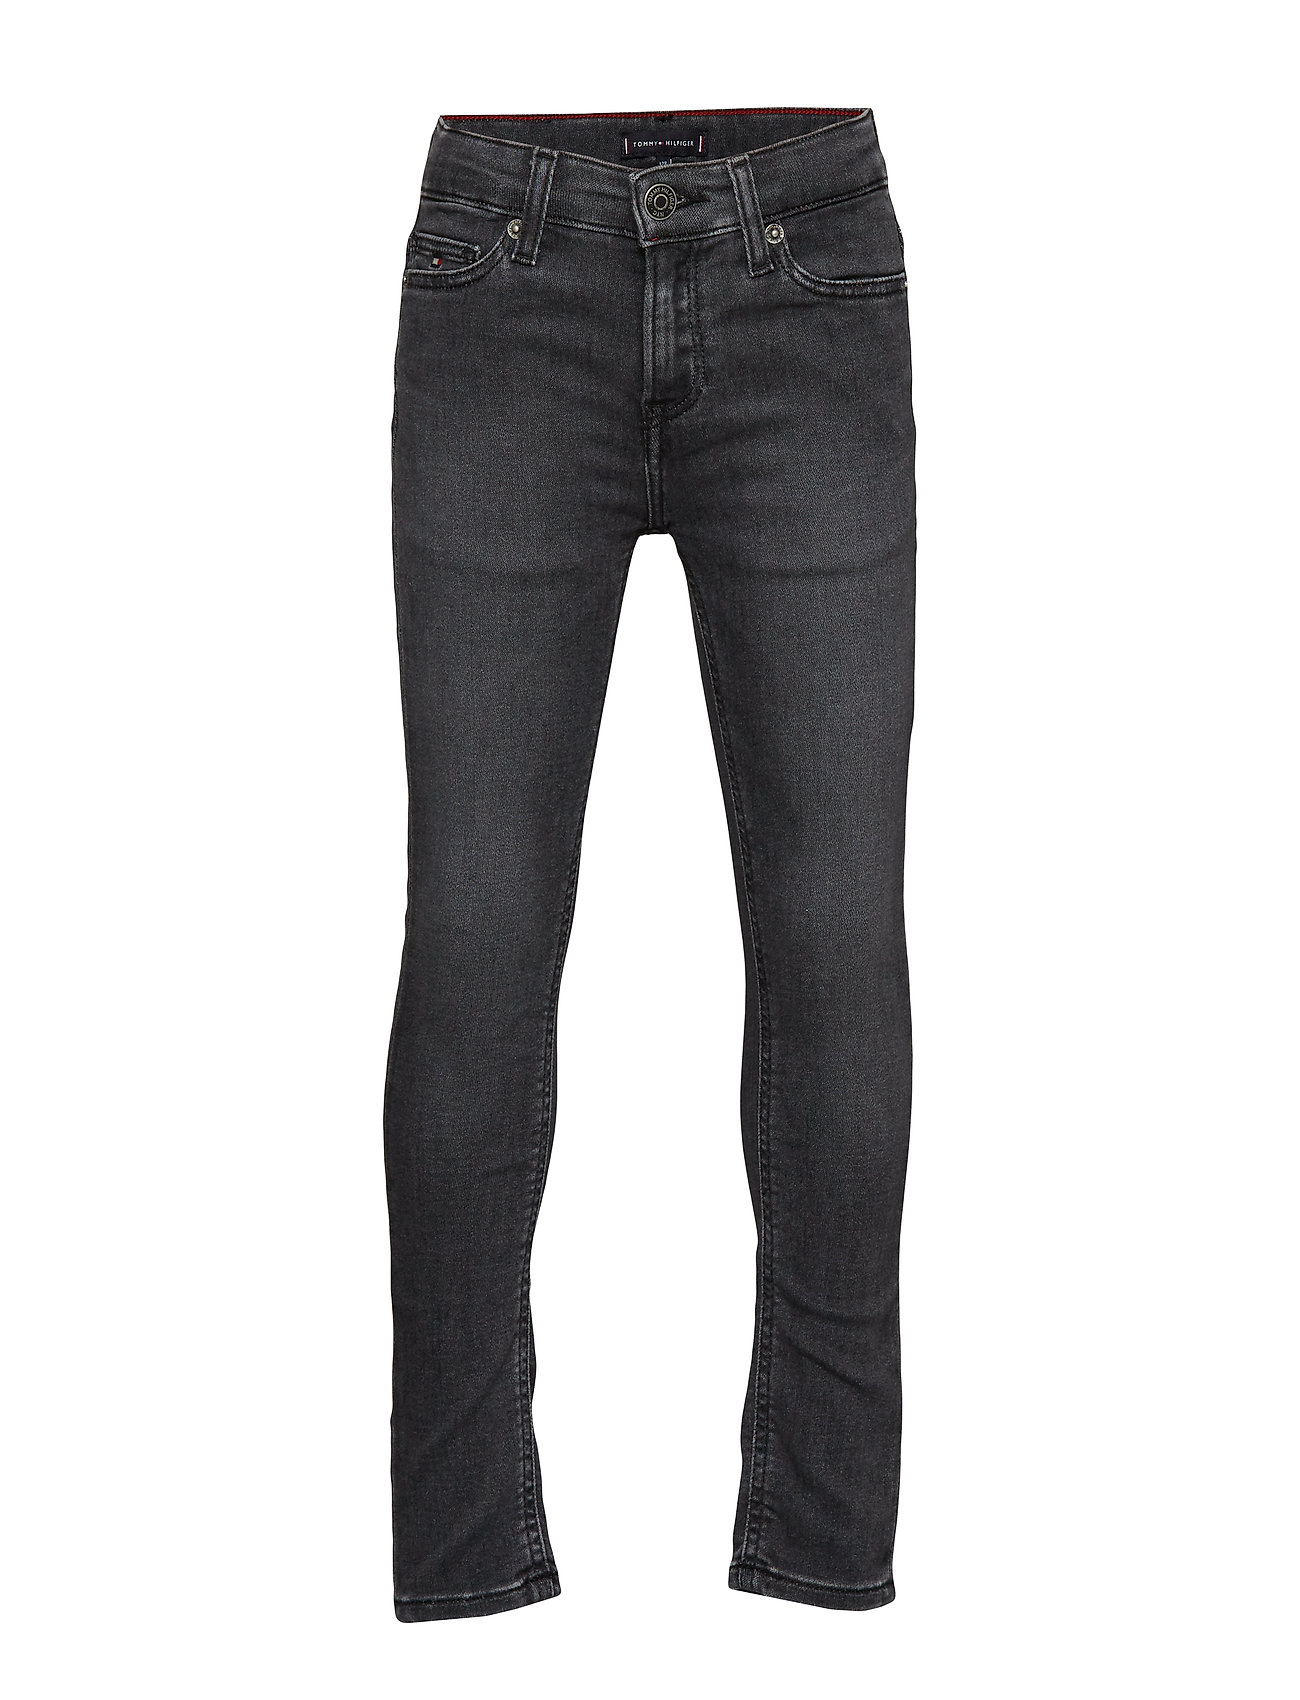 Tommy Hilfiger SIMON SKINNY SLBGST - SLIGA BLACK GREY STRETCH